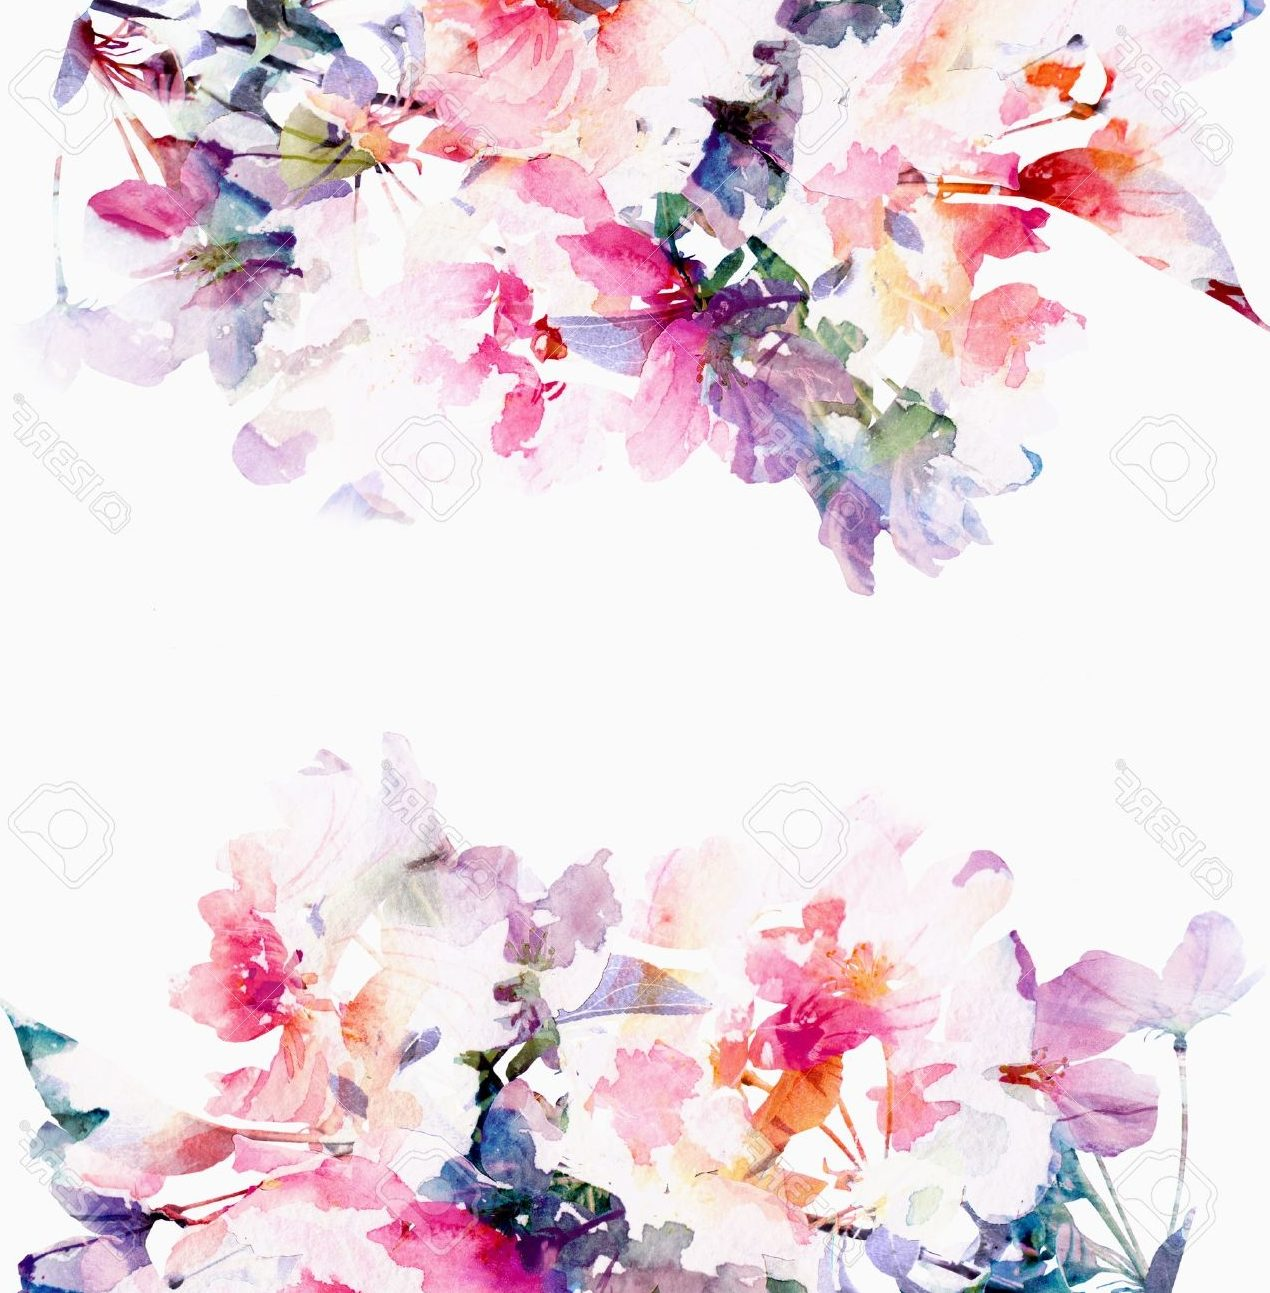 50 Floral Background Ideas Hd Download Free Background Images